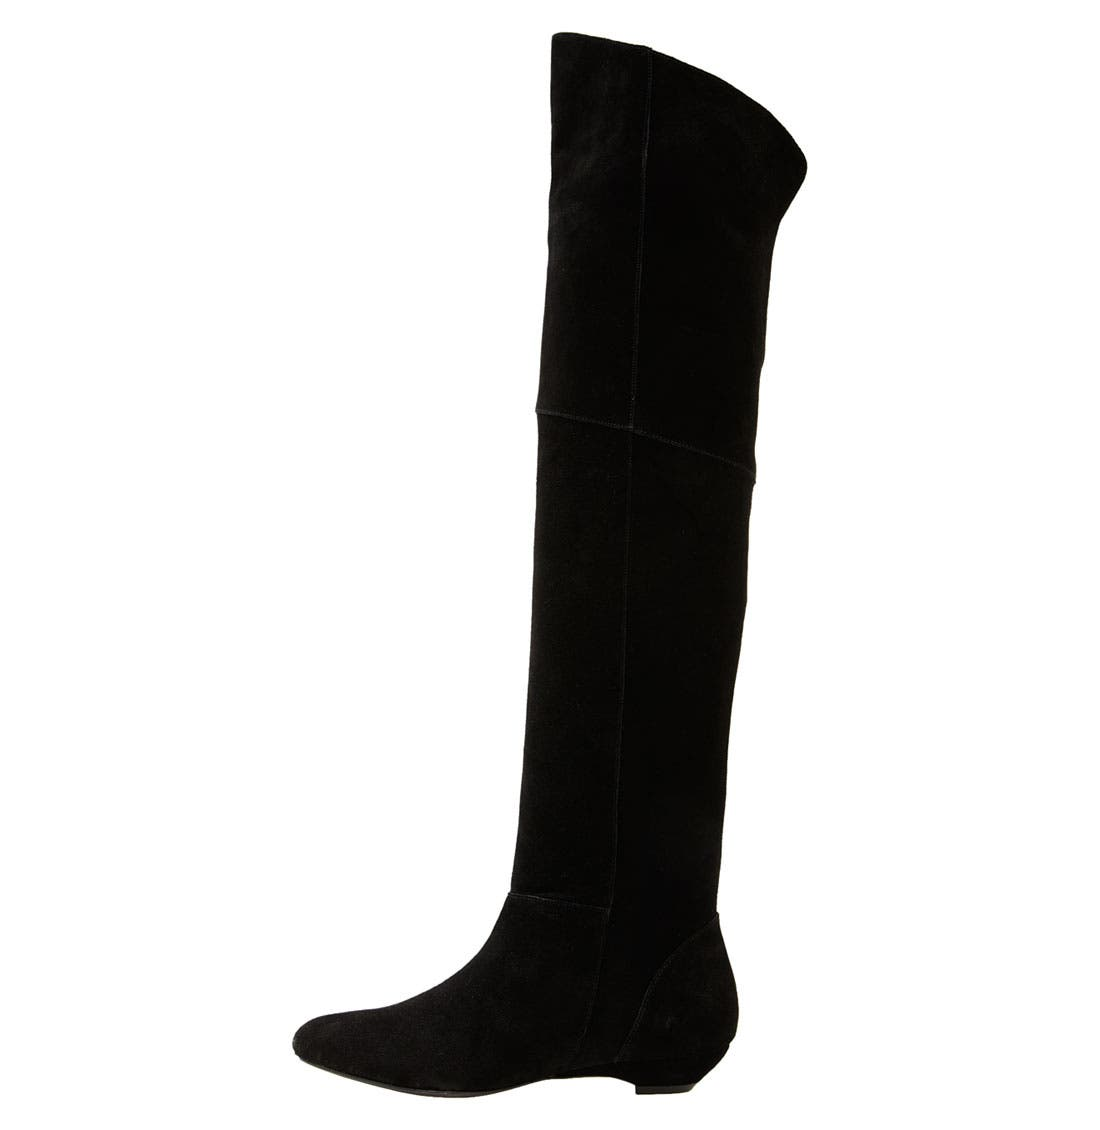 'Overrpas' Over the Knee Boot,                             Alternate thumbnail 2, color,                             Black Suede